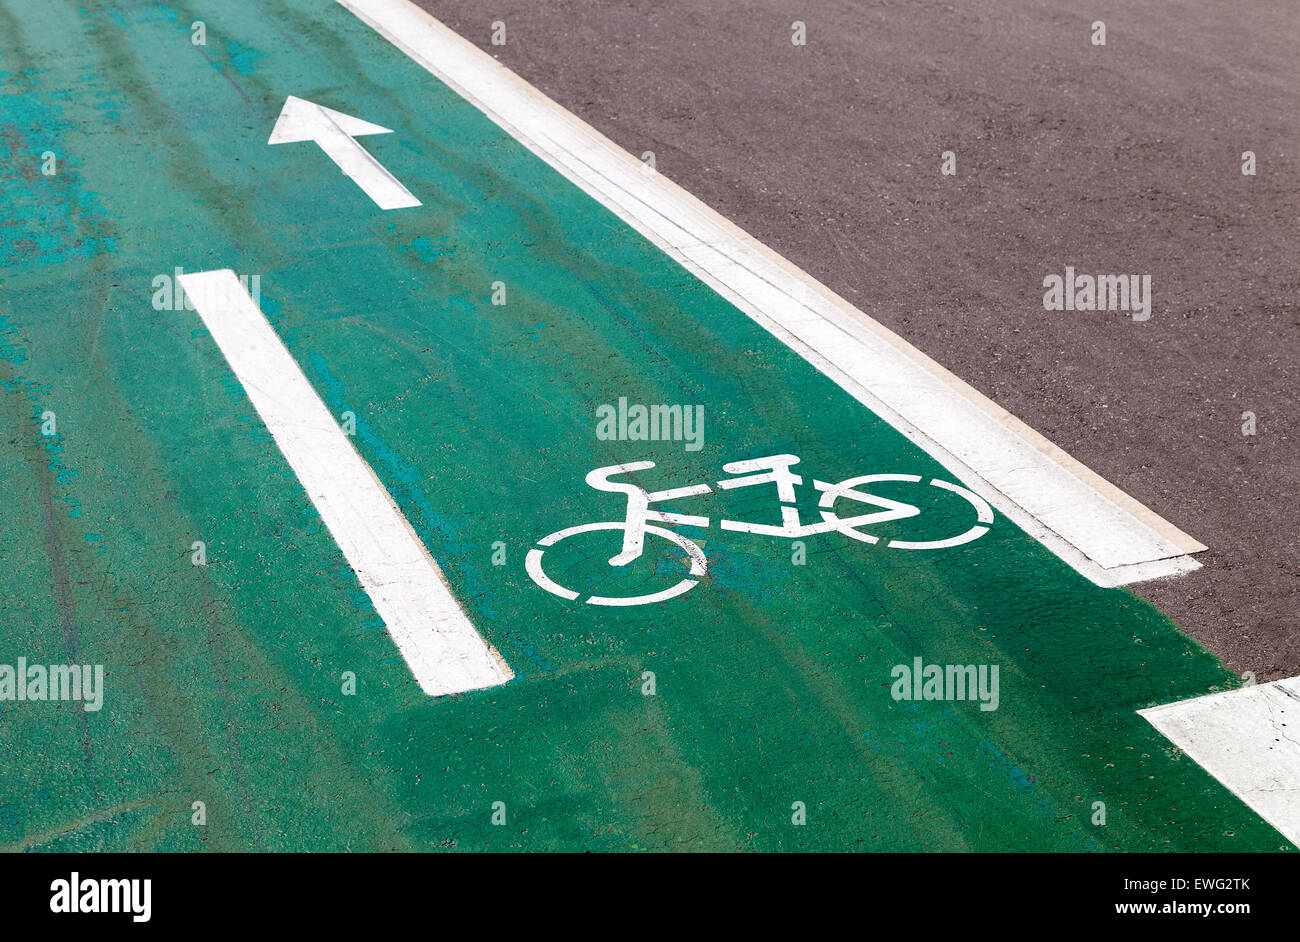 Location signe de route sur piste cyclable Photo Stock